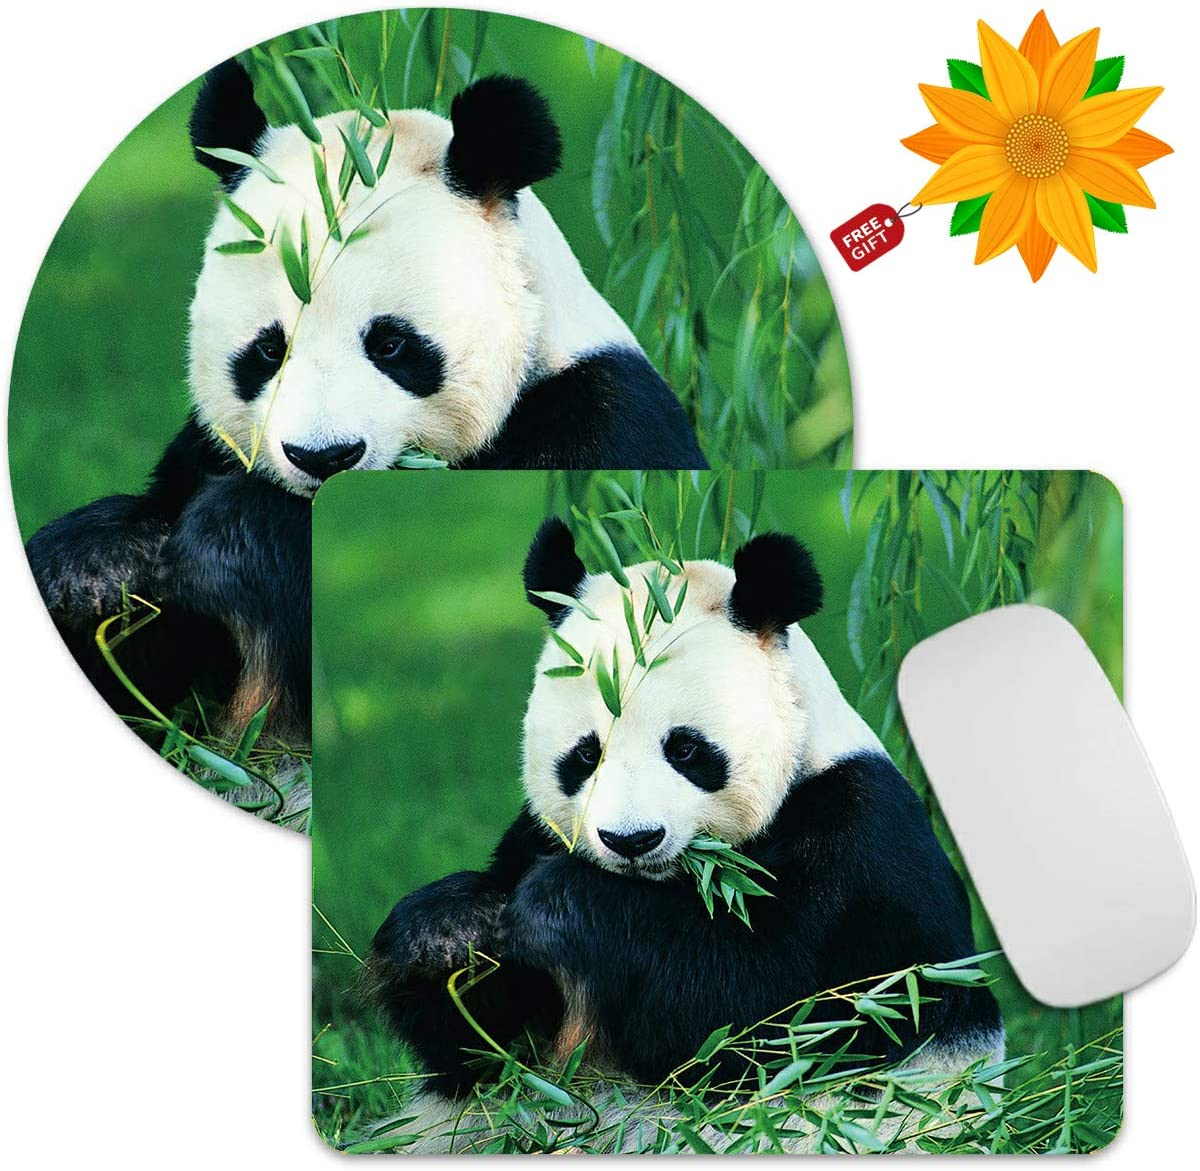 2 Pack Gaming Mouse Pad Animals Panda Bears Mousepad Non-Slip Rubber Rectangle Round Mouse Pads Office Accessories Desk Decor Mouse Mat for Computers Laptop + Sunflower Stickers